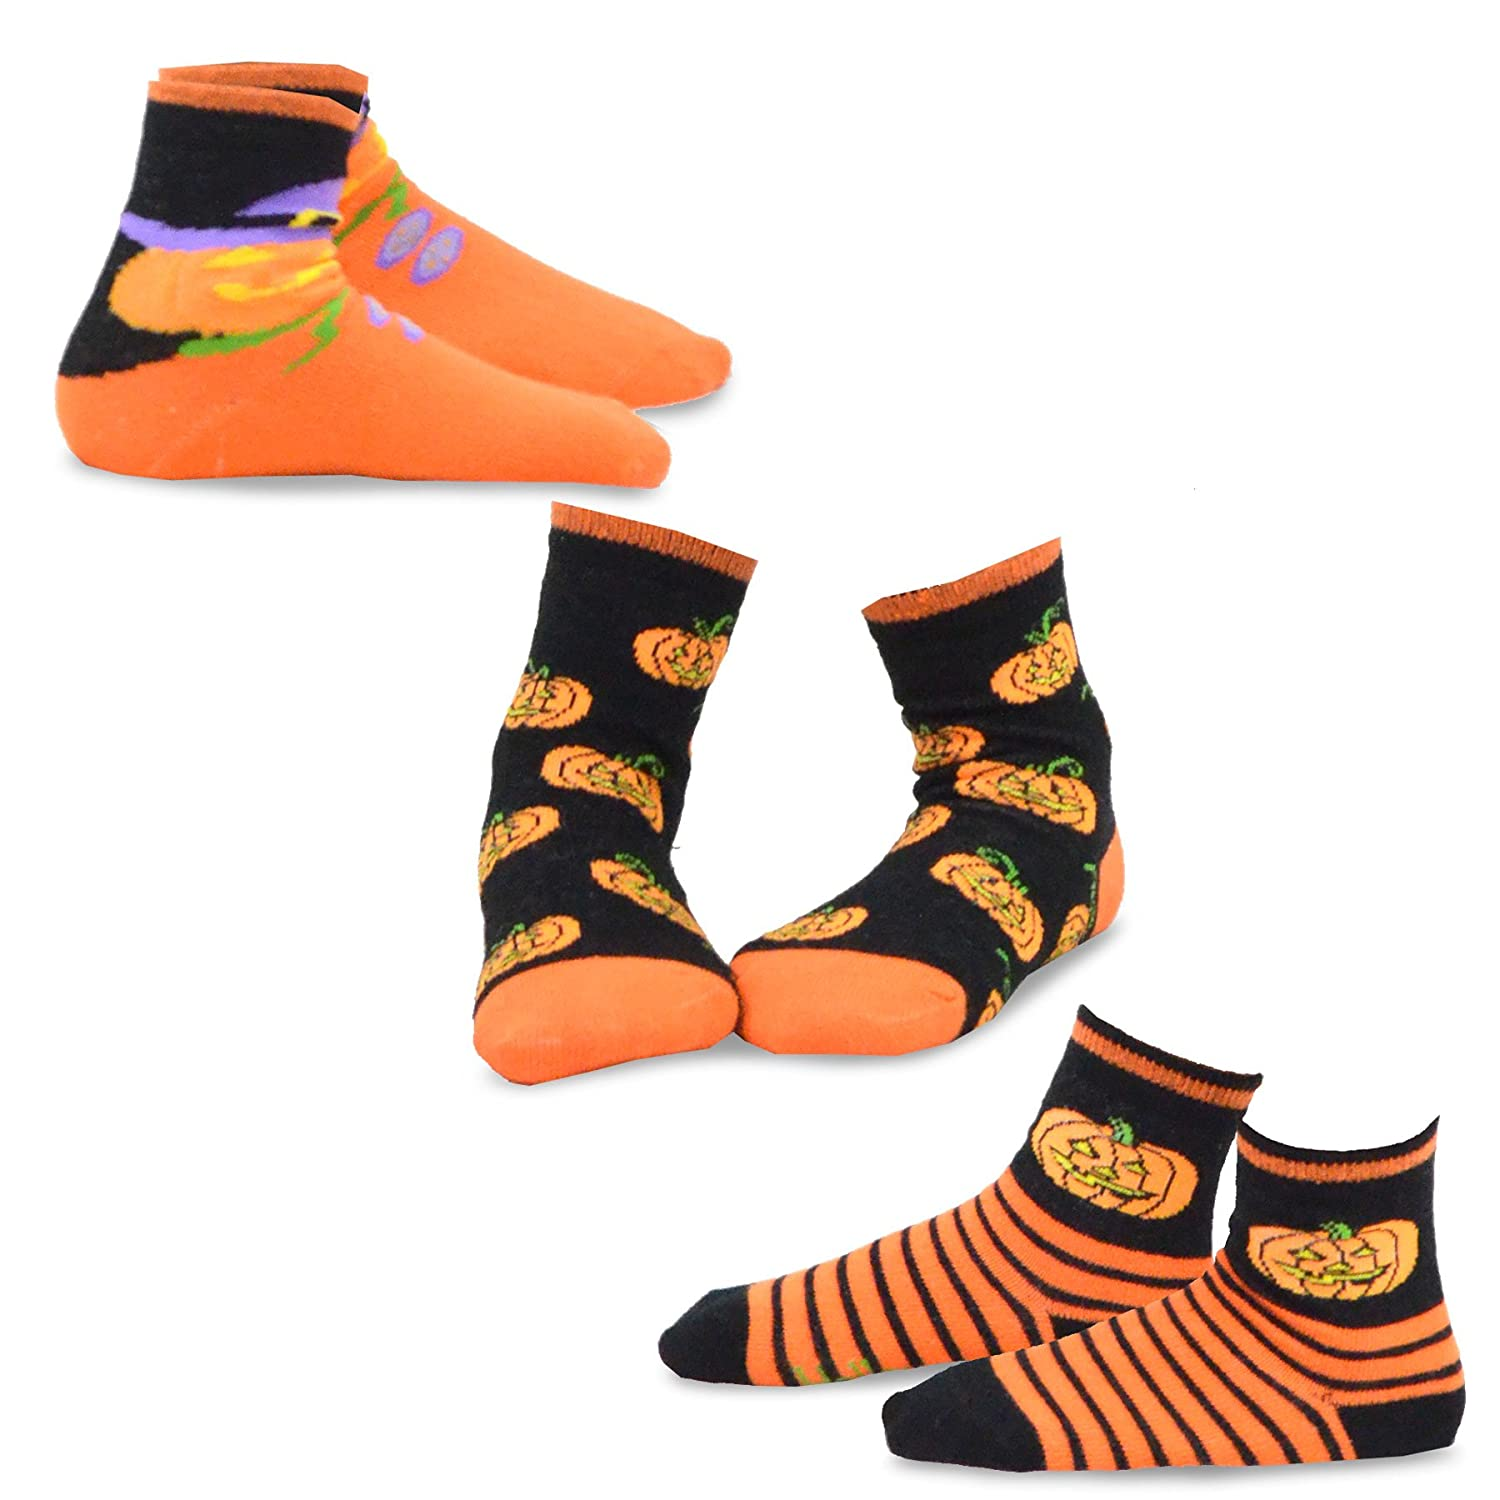 TeeHee Halloween Kids Cotton Fun Crew Socks 3-Pair Pack